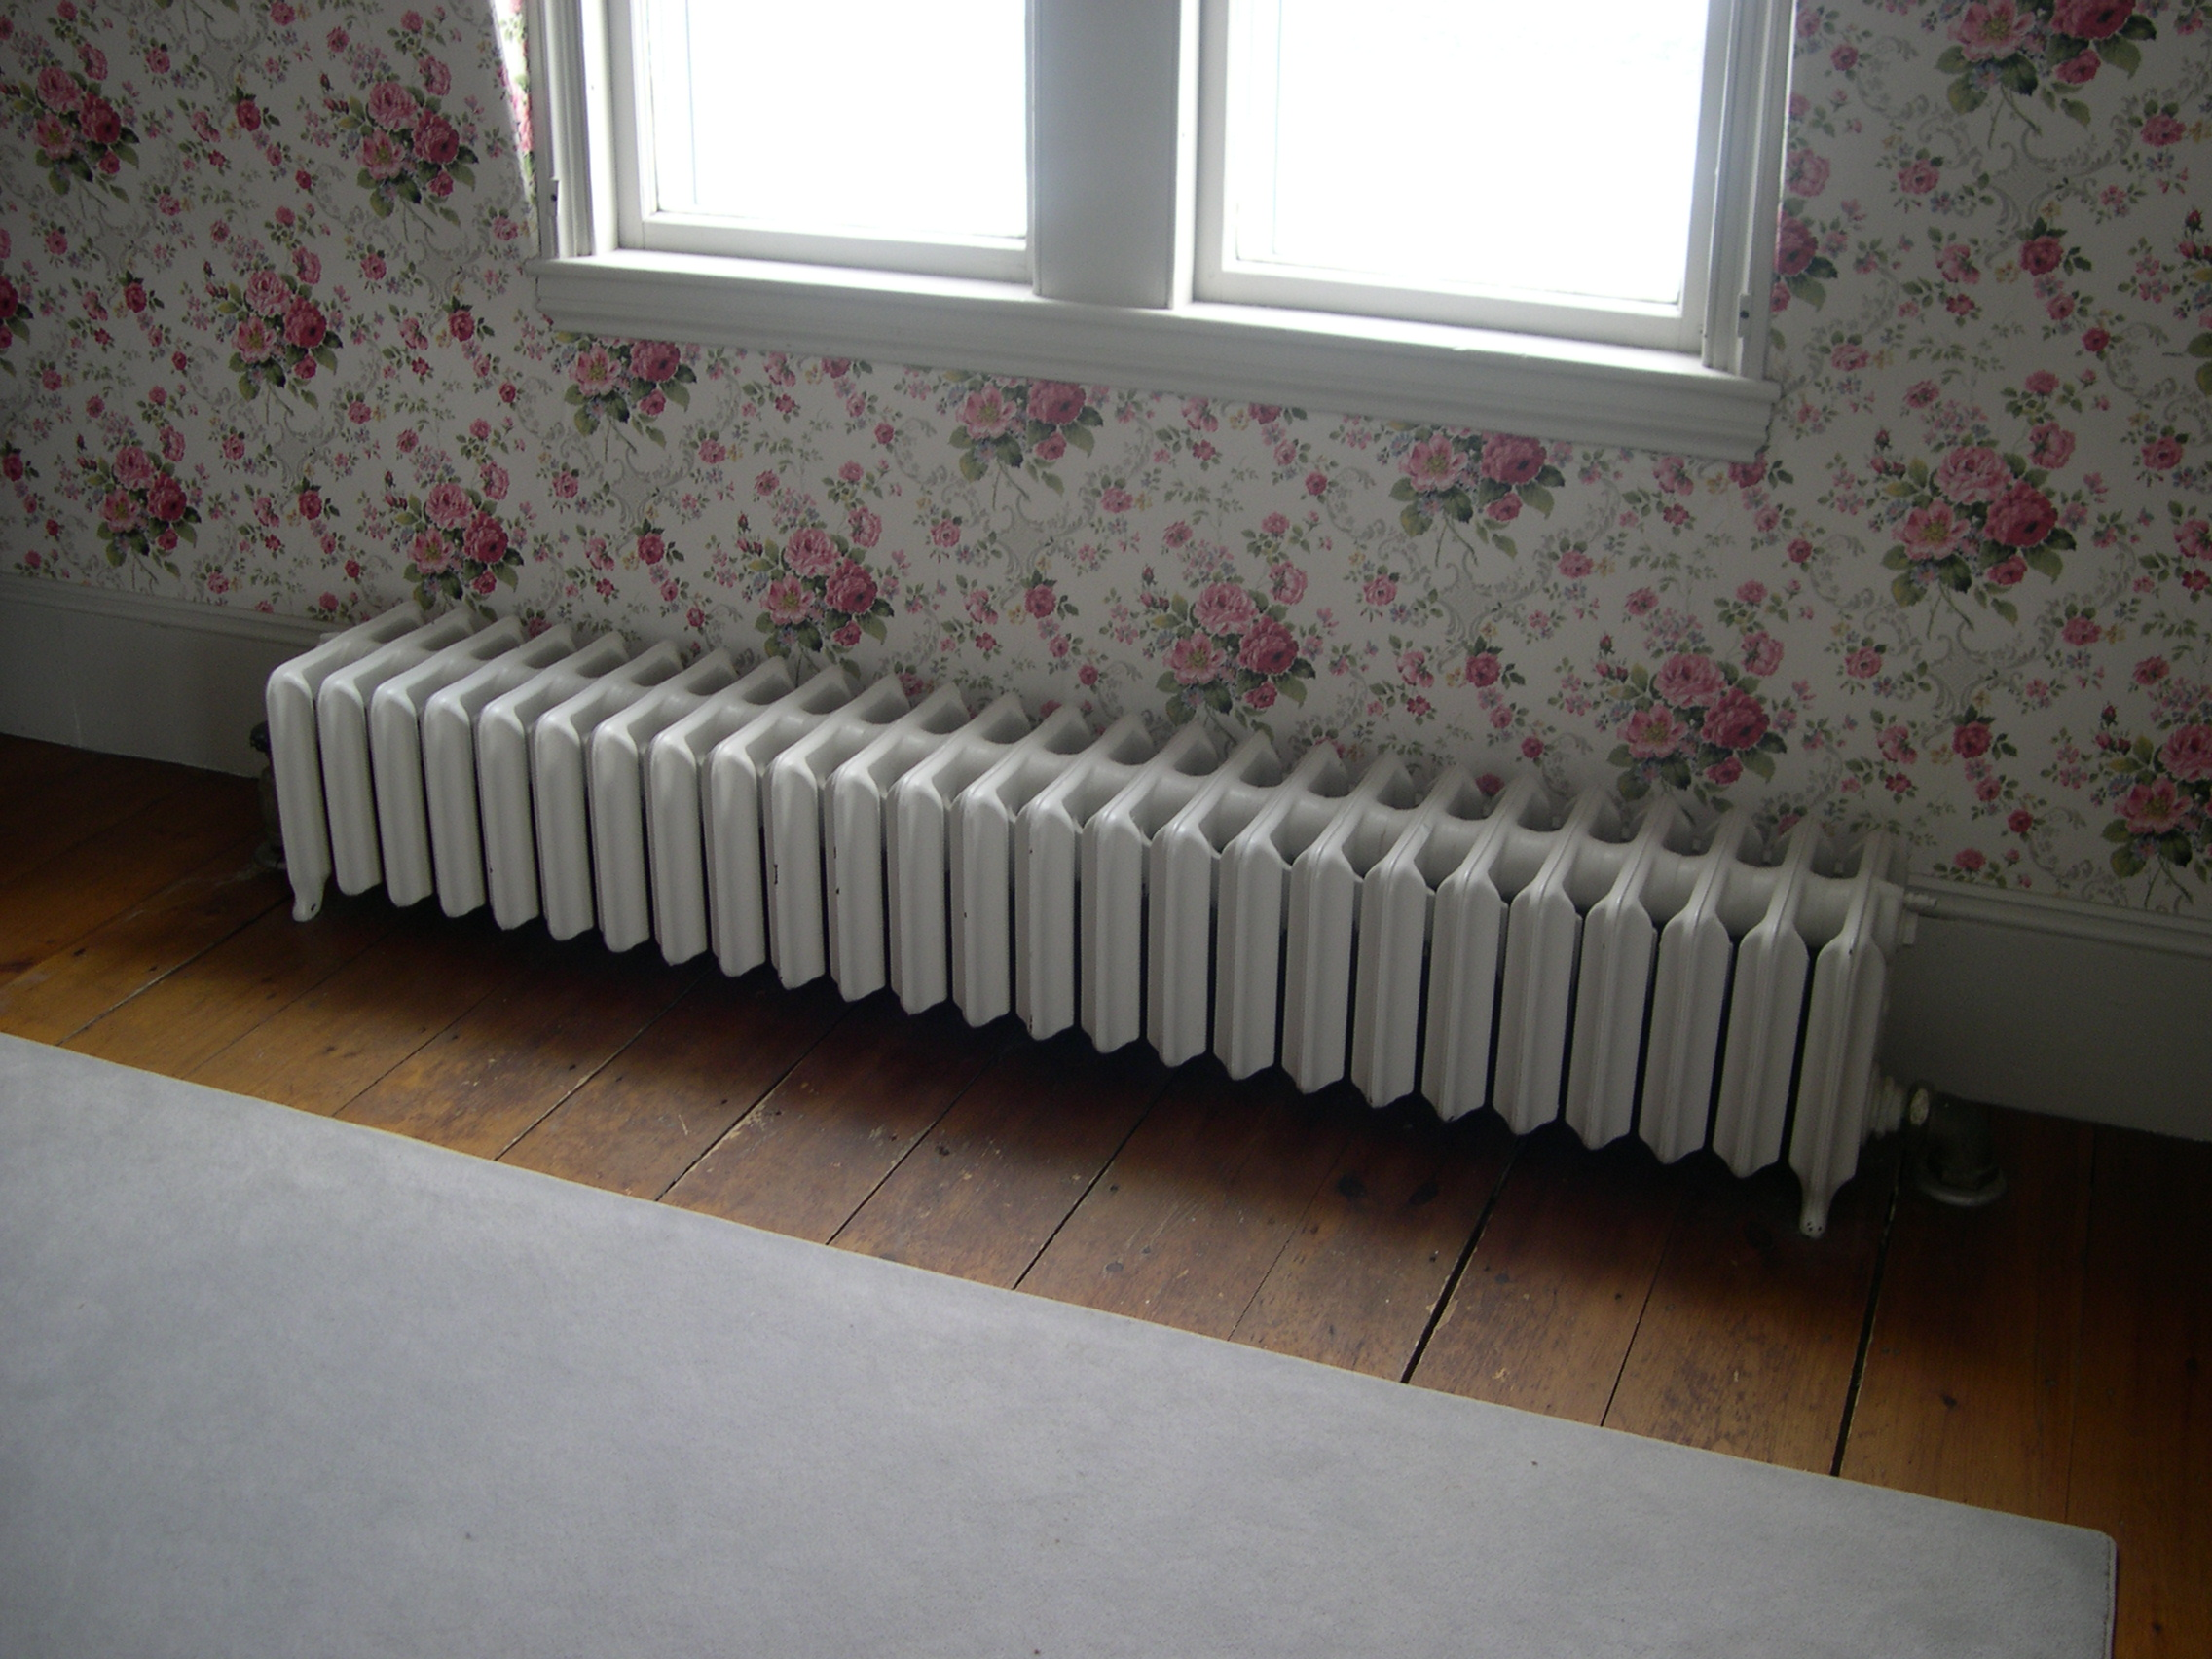 Manly Large Ci Radiator Forced Hot Water Cochecho Plumbing Heating Rochester Hot Water Radiators Montreal Hot Water Radiators Vs Steam houzz 01 Hot Water Radiators